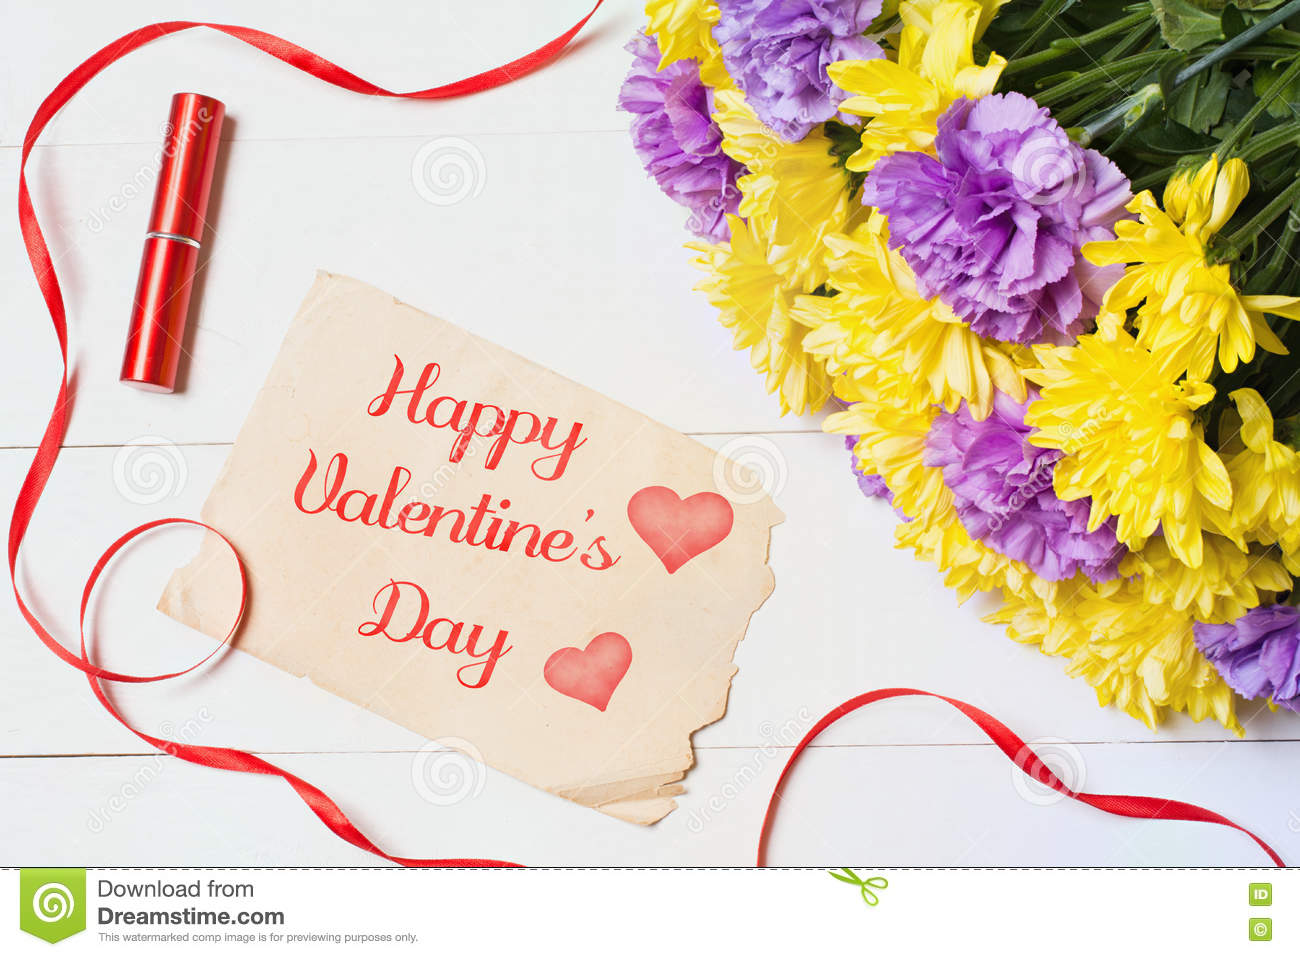 Happy valentines day beautiful flowers on white wooden table stock happy valentines day beautiful flowers on white wooden table izmirmasajfo